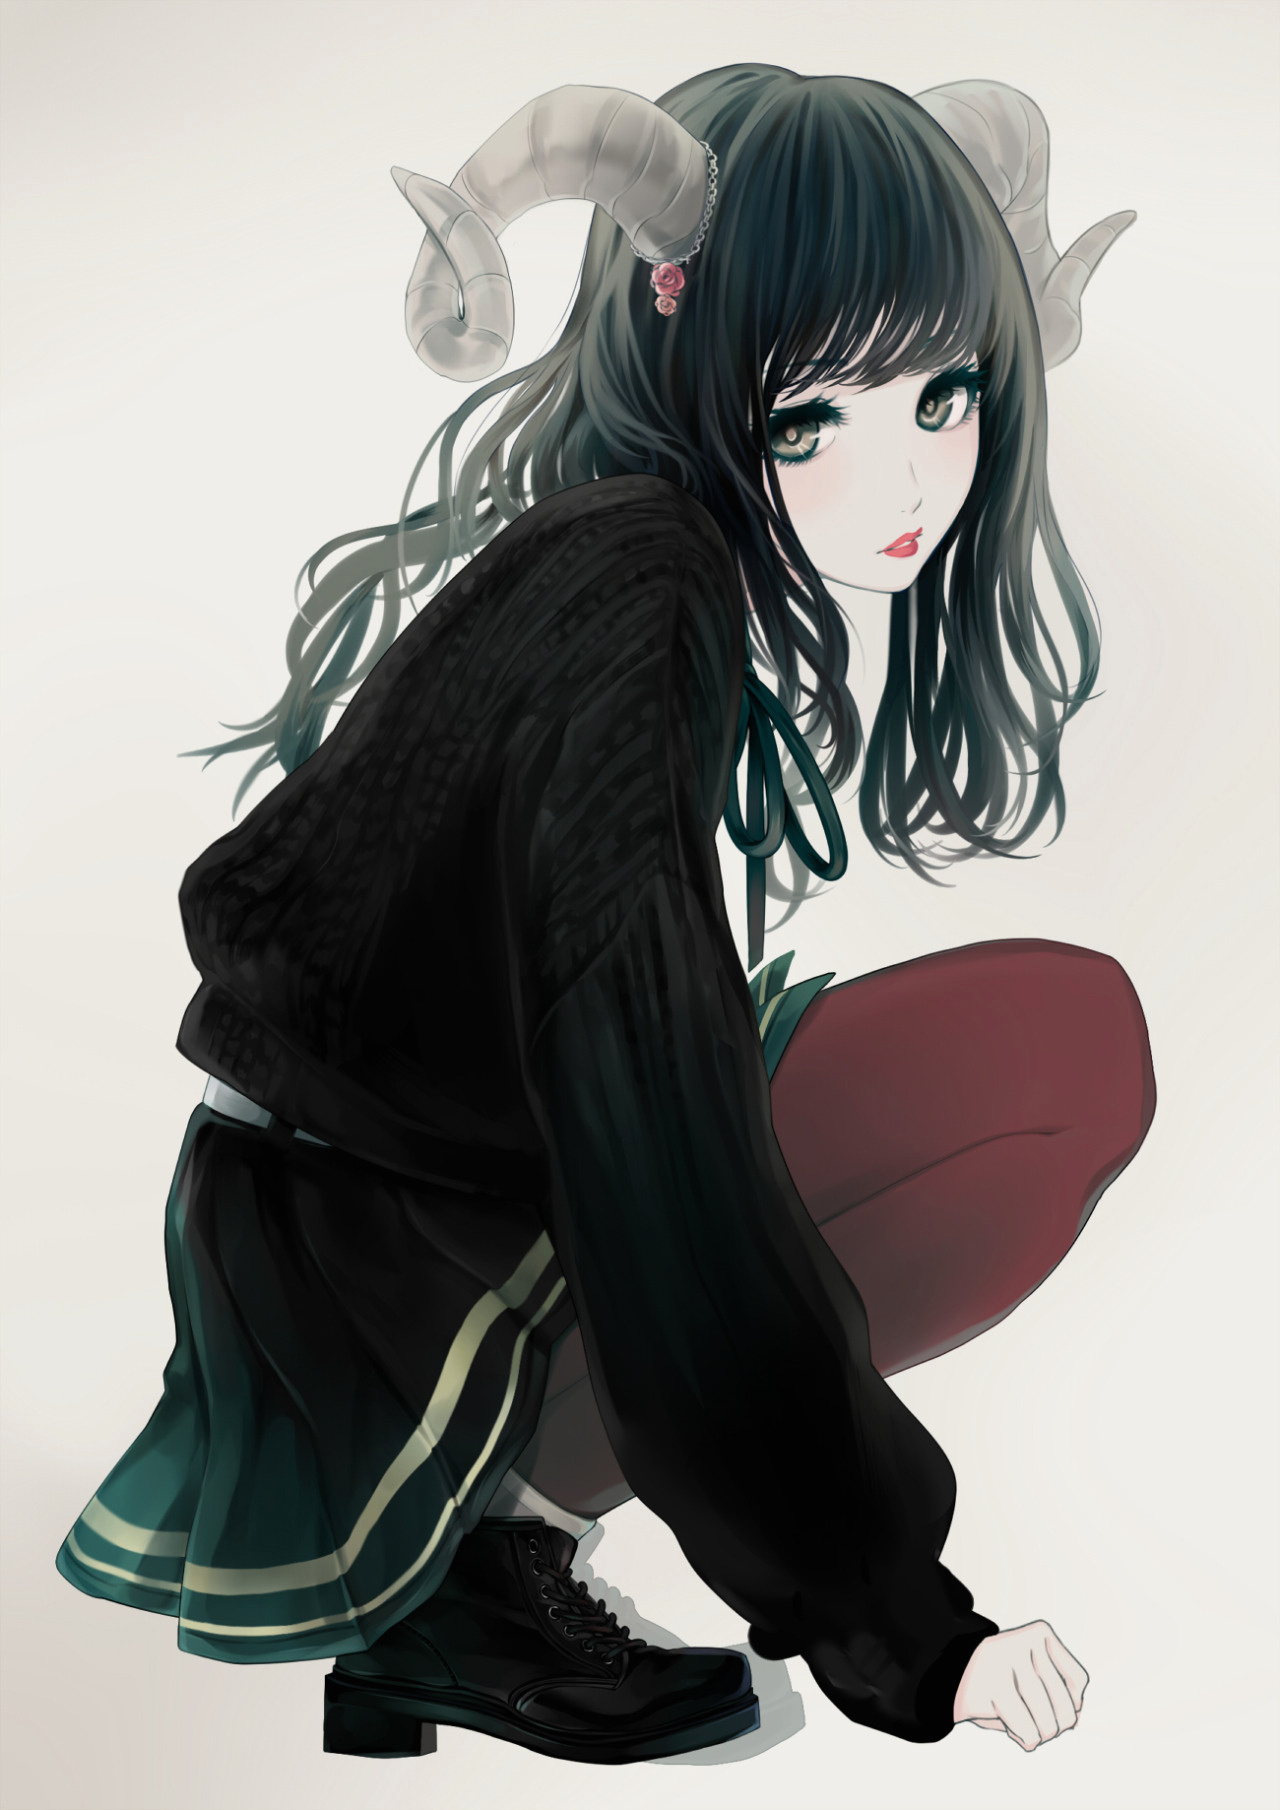 Anime girl with black hair and silver eyes awesome long haired demon of anime girl with black hair and silver eyes jpg